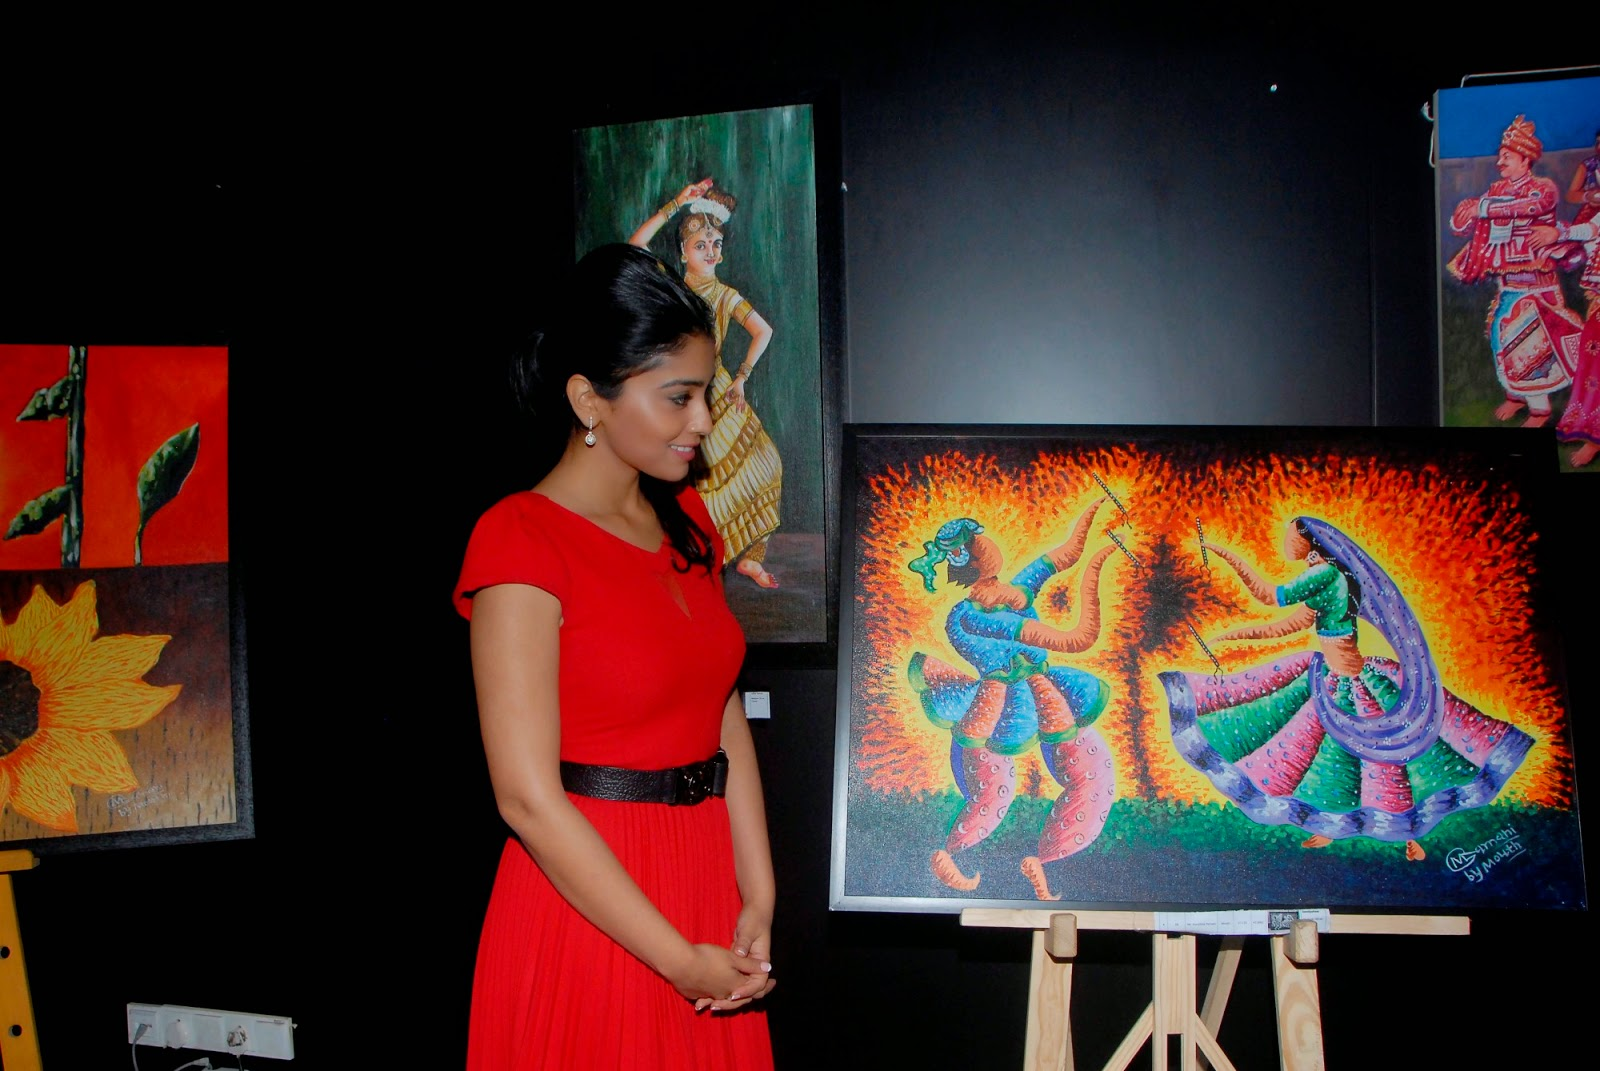 Shriya Saran Indian Mouth And Foot Painting Artists Event Stills Latest Movie Updates Movie Promotions Branding Online And Offline Digital Marketing Services